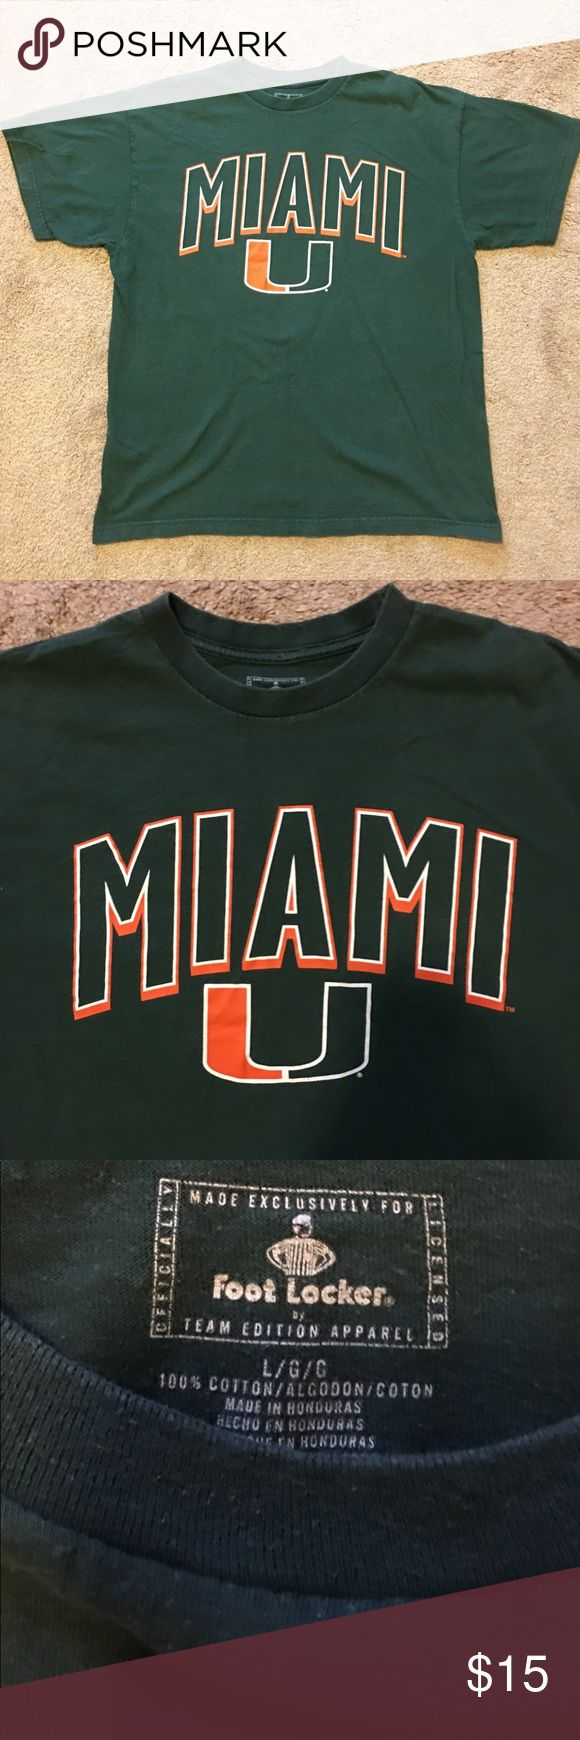 University of Miami College Shirt Very Nice Foot Locker Edition University Of Miami College T Shirt   Color is green with The Big U Logo On The Front Of The T Shirt  Size is Men's Large, In Great Condition Nike Shirts Tees - Short Sleeve